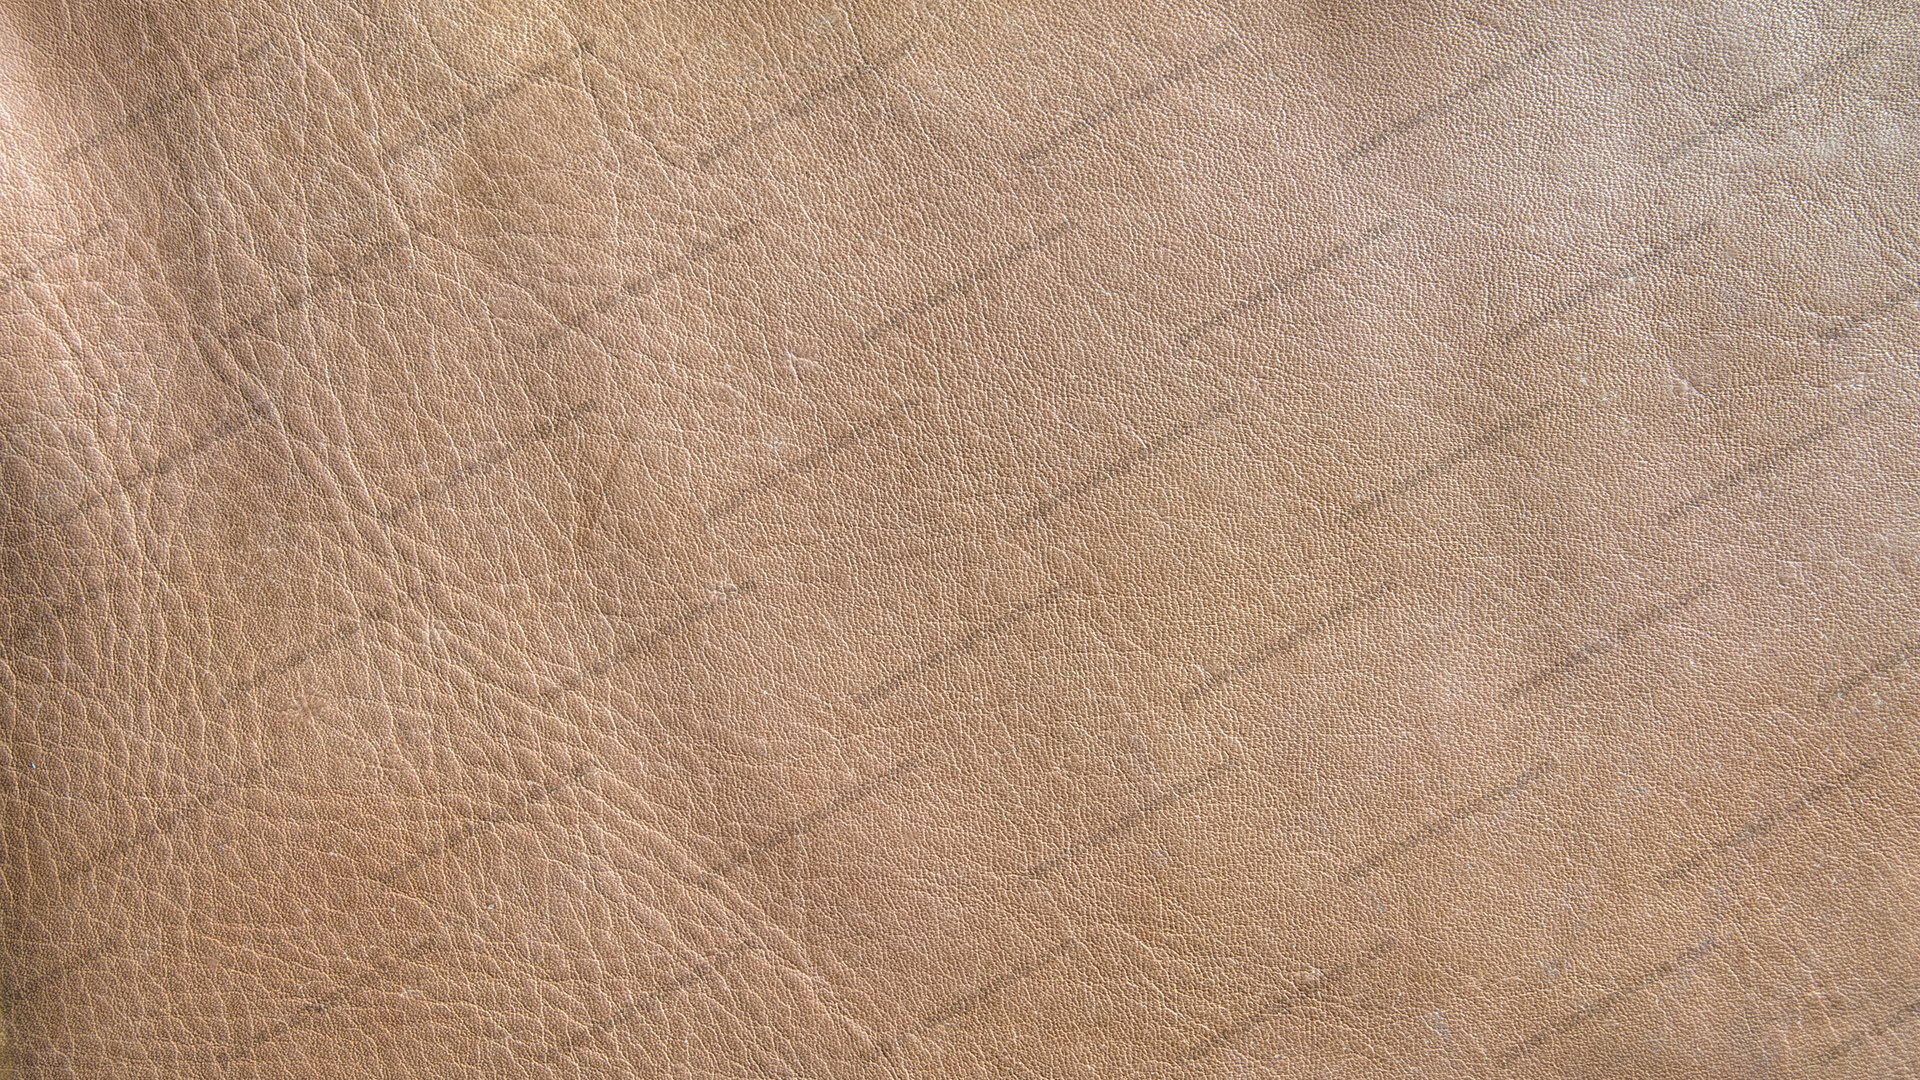 Light Brown Leather Texture HD 1920 x 1080p